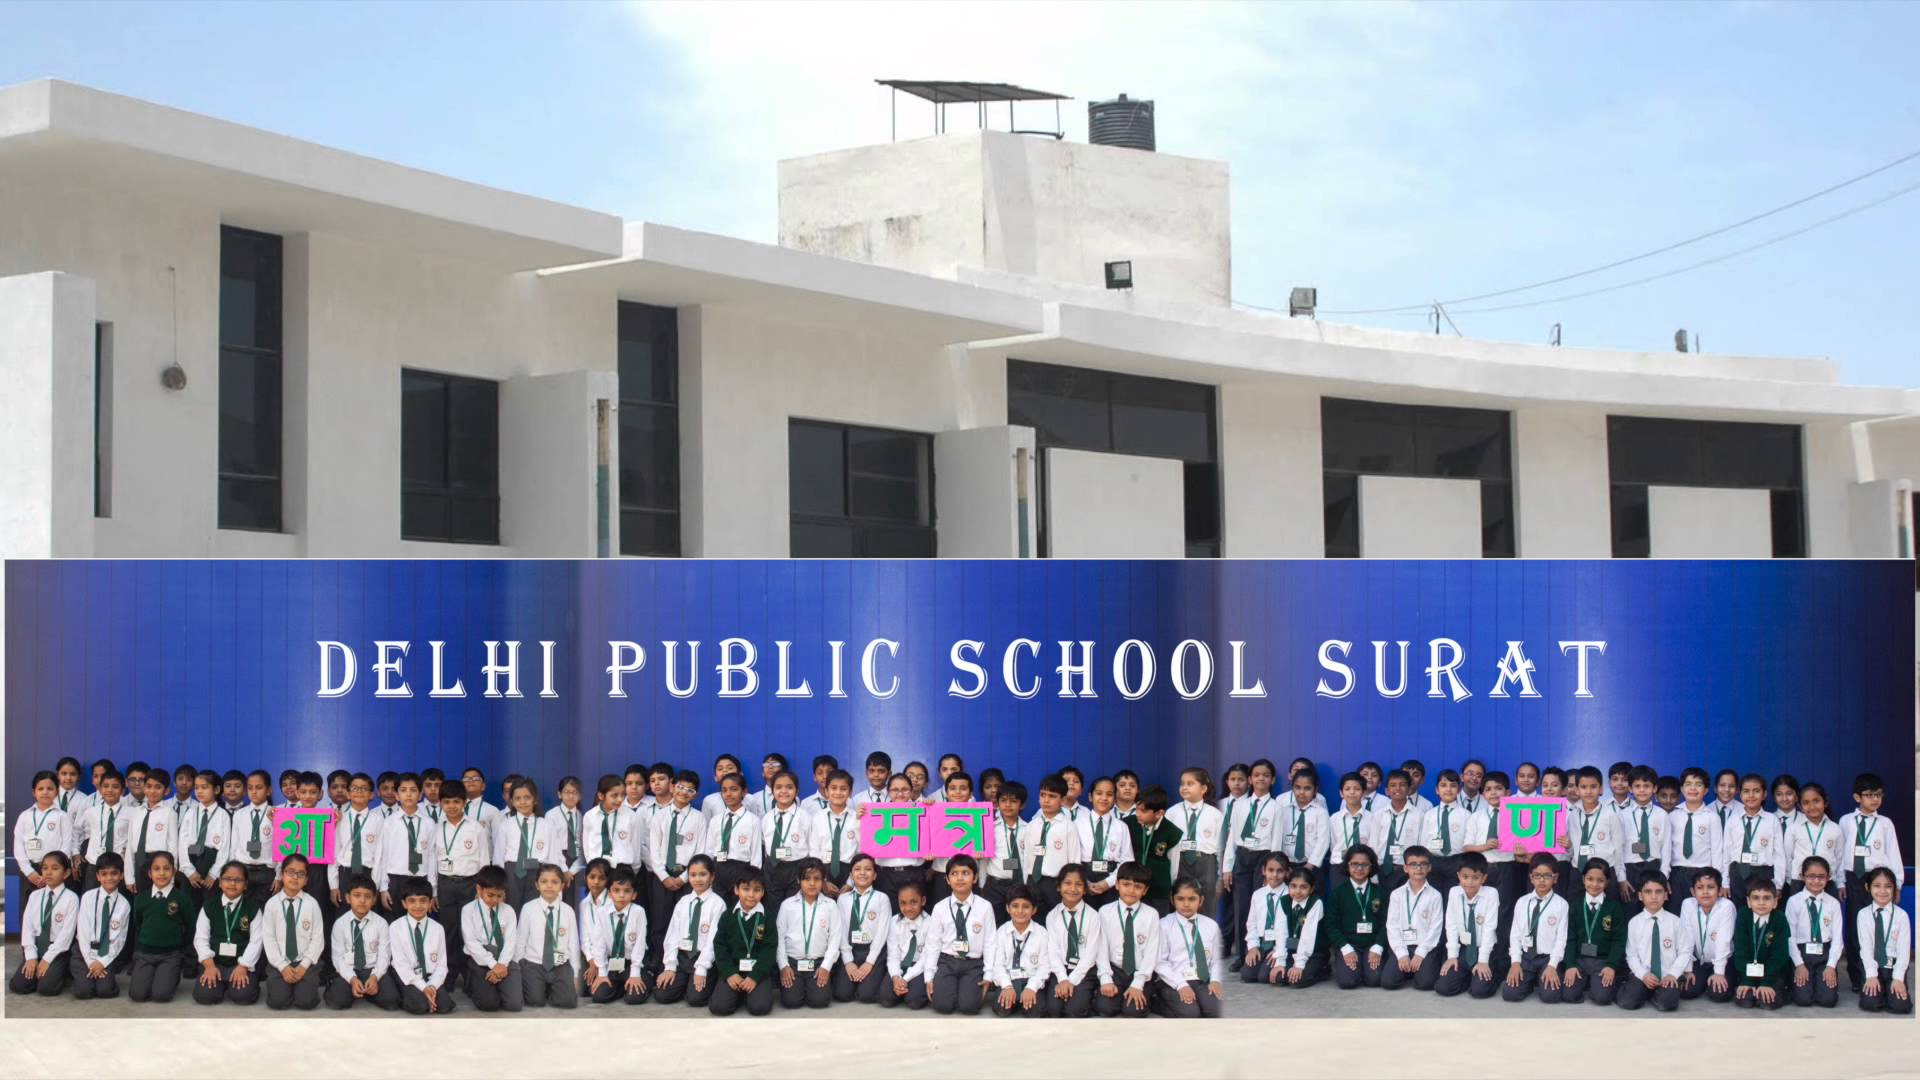 Dehli public school student dies of cardiac arrest while playing basketball.